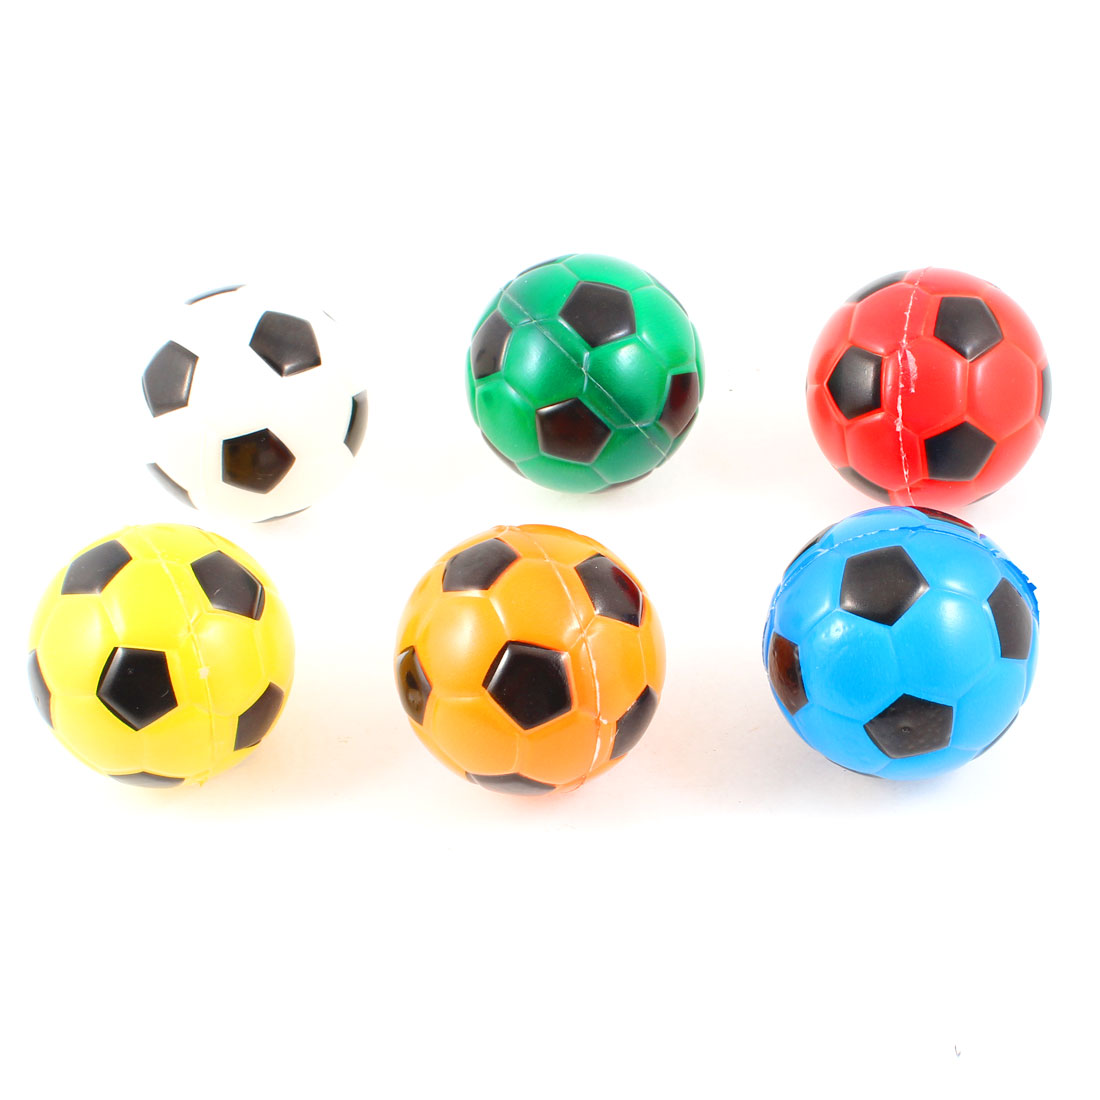 6 Pcs Colorful Squeeze Toss Foam Stress Footballs for Children